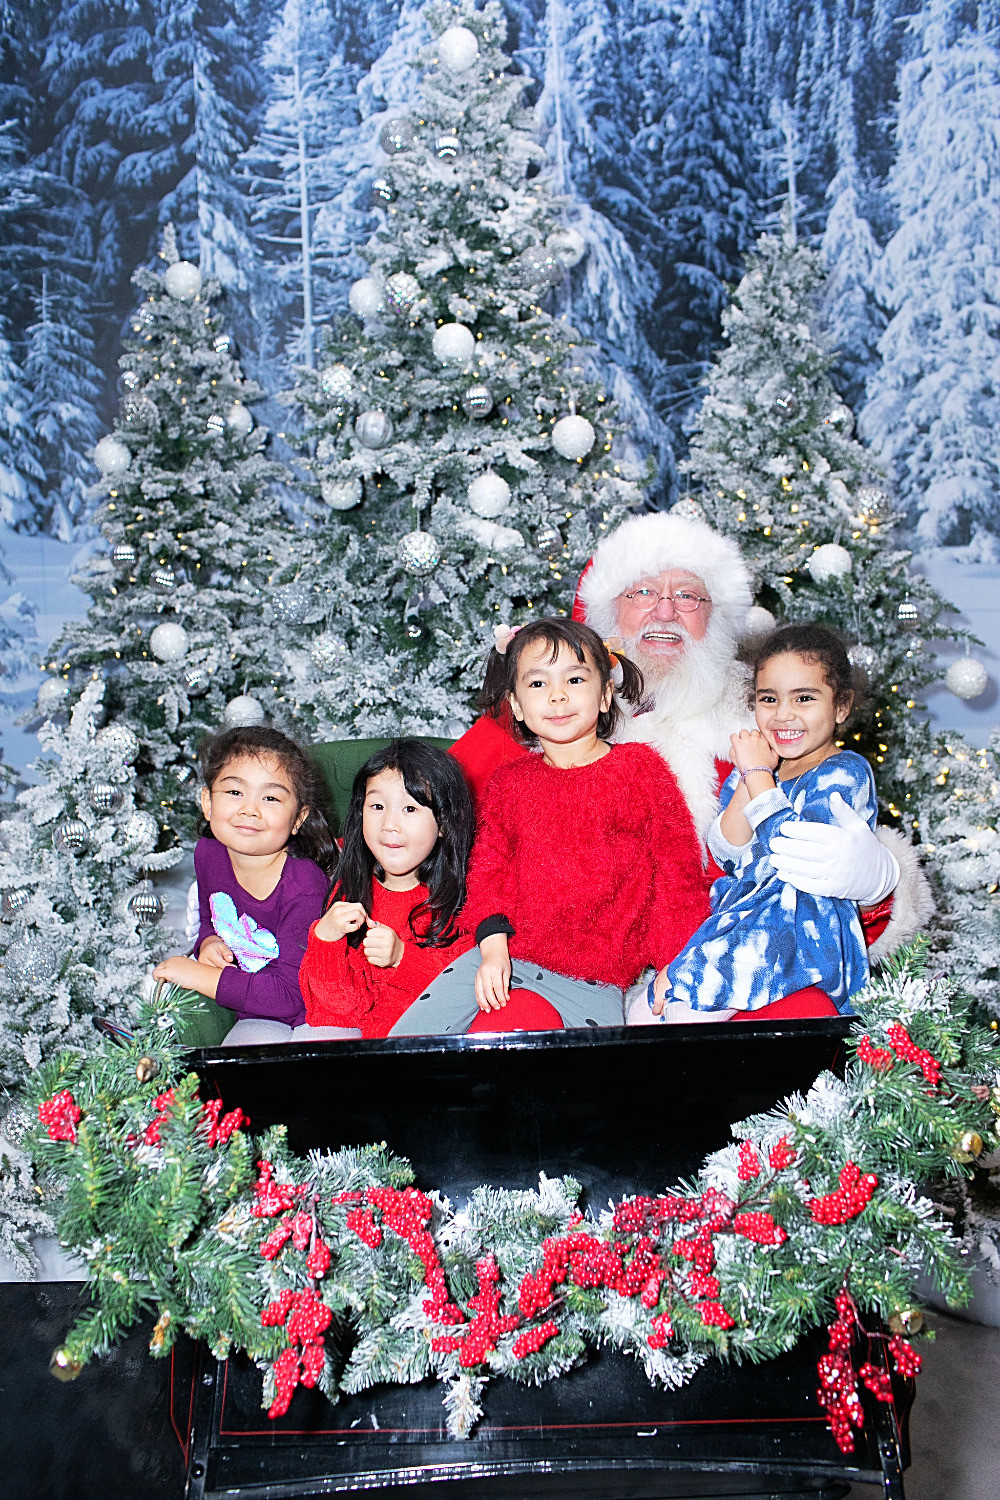 Holiday Bucket List, Fun things to do in NYC for the holidays with your kids, Instagram Bait, Holiday Pop Up, NYC Pop Up, Free in NYC, Curious G and Me, NYC family, NYC with kids, NYC Christmas, NYC icon, Holiday Shopping, Christmas AF, Christmas overload, Christmas explosion, Brookfield Place, Luminaries, Santa at Brookfield Place